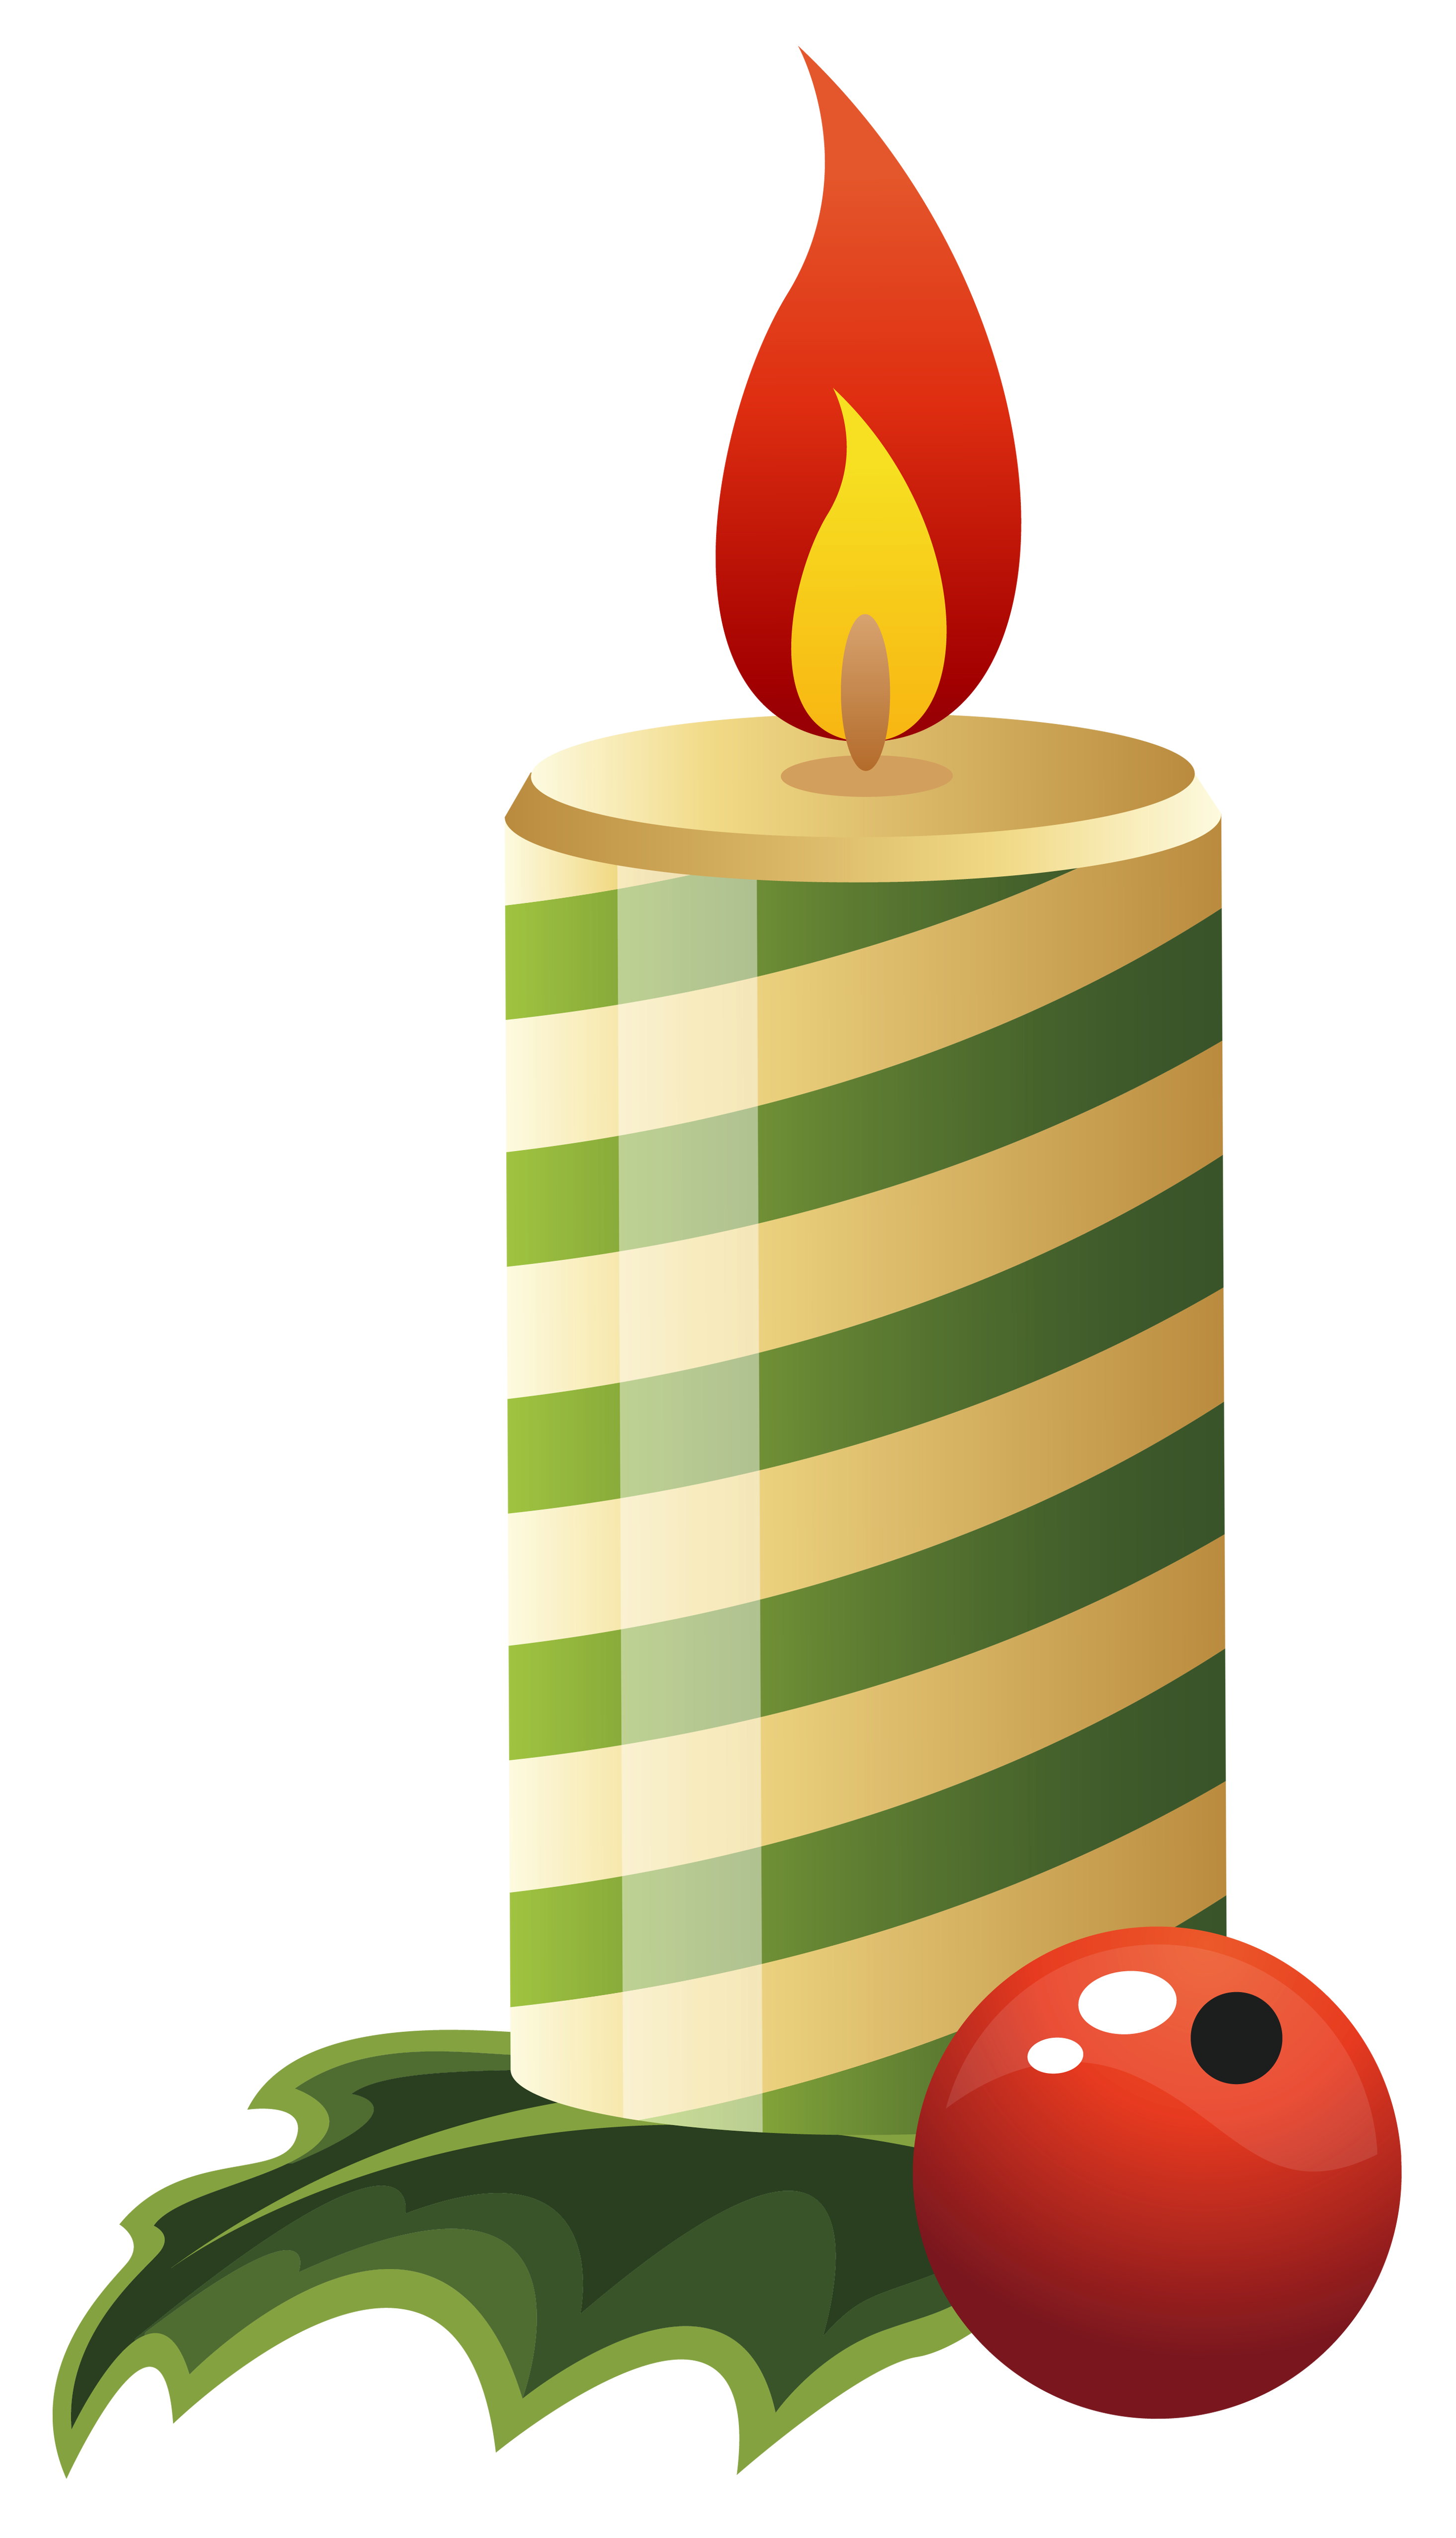 Candles clipart transparent background. Green christmas candle png